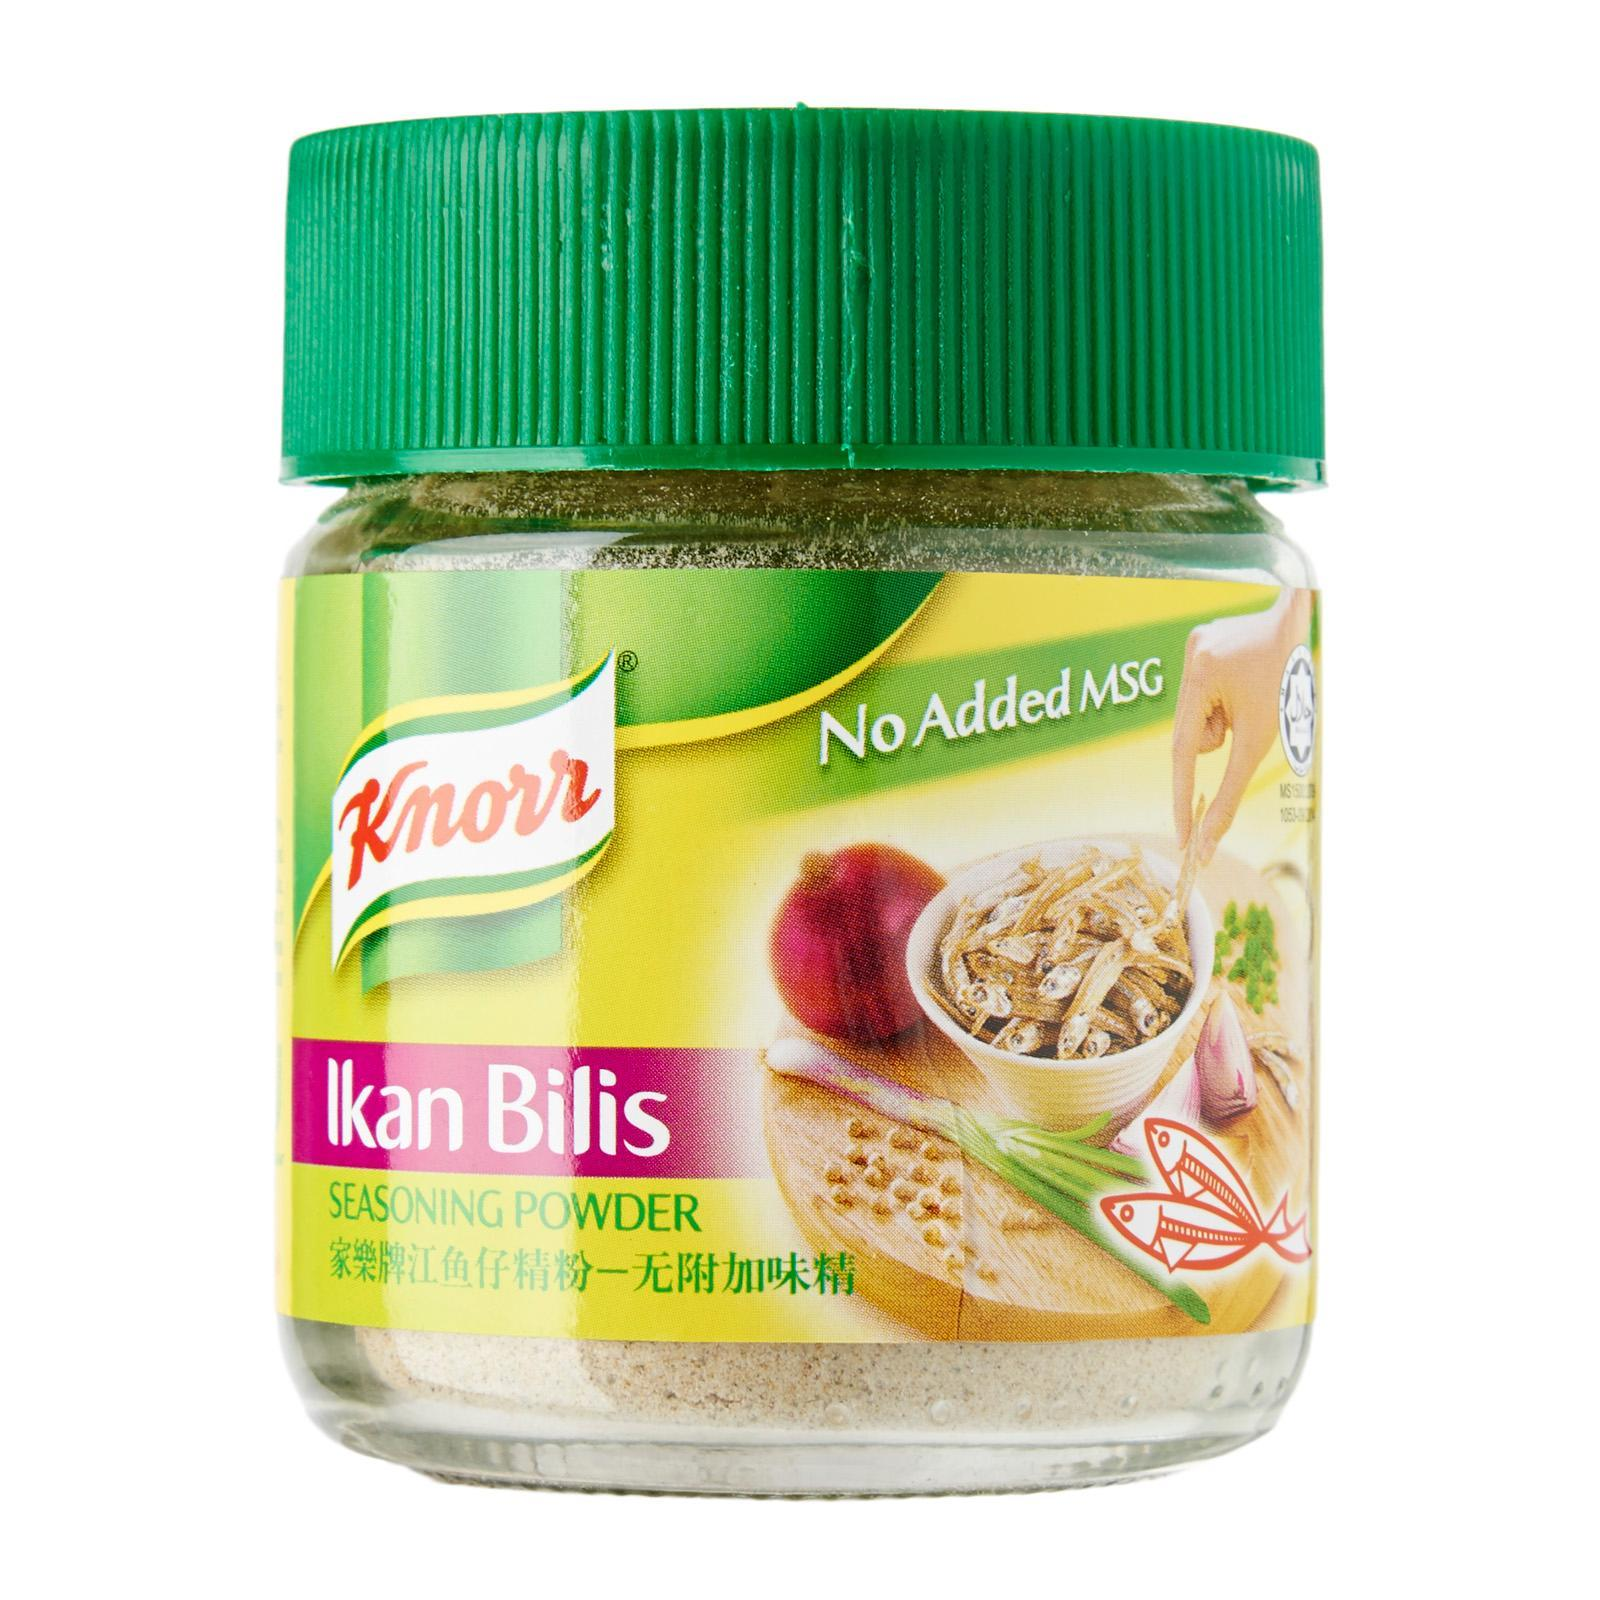 Knorr No Added MSG Ikan Bilis Seasoning Powder